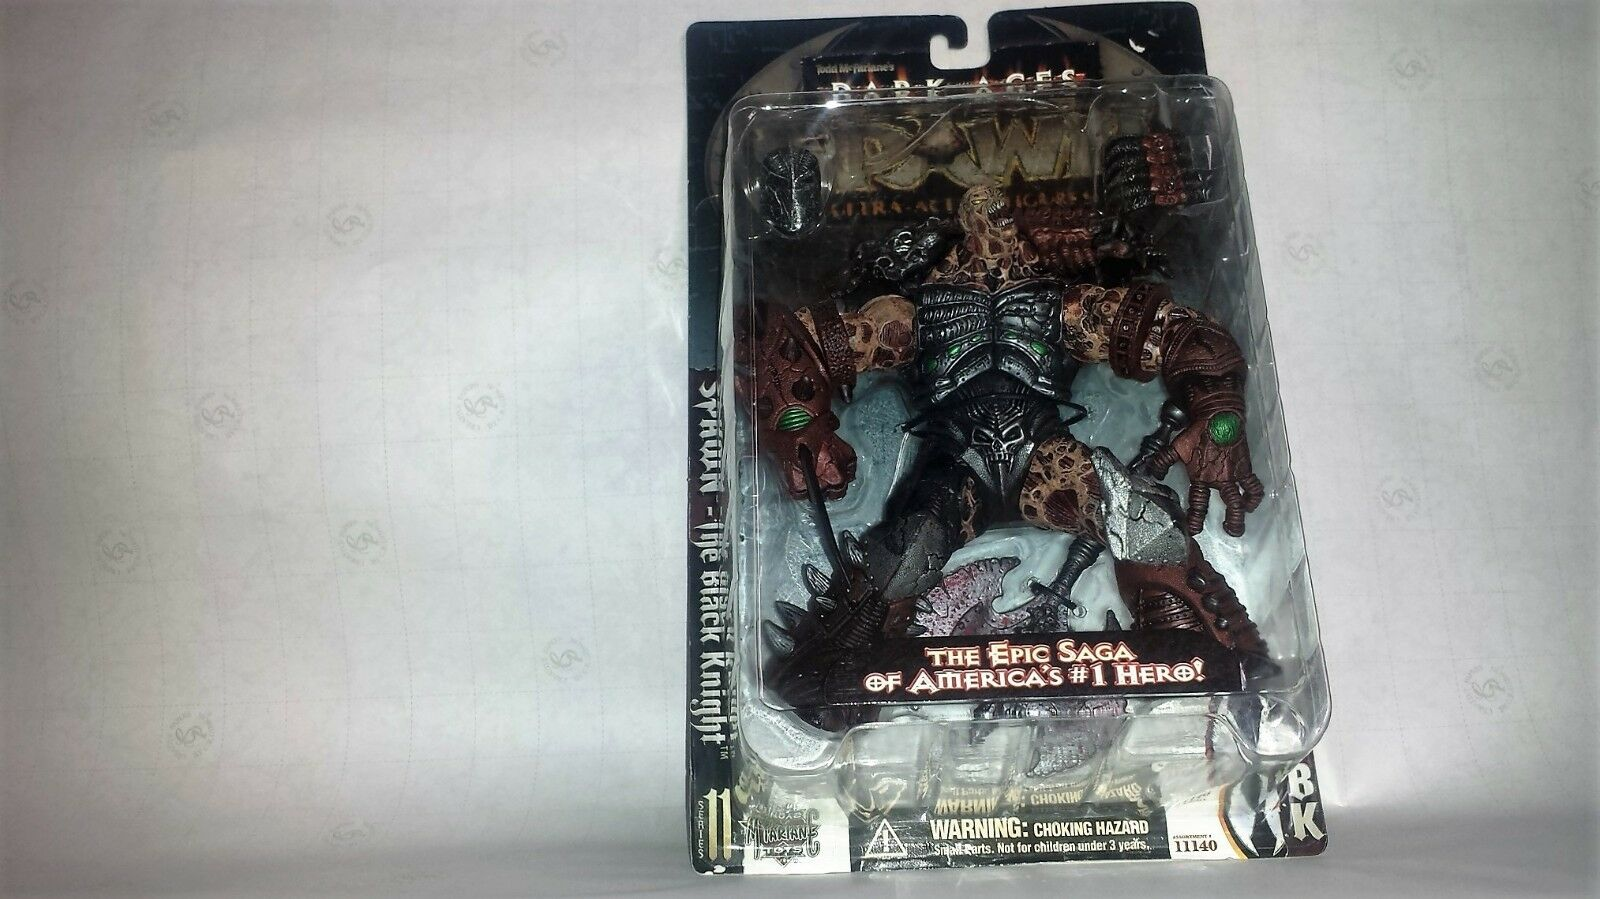 MCFARLANE TOYS SPAWN THE DARK AGES SERIES 11 COMPLETE SET OF 6 FIGURES plus one